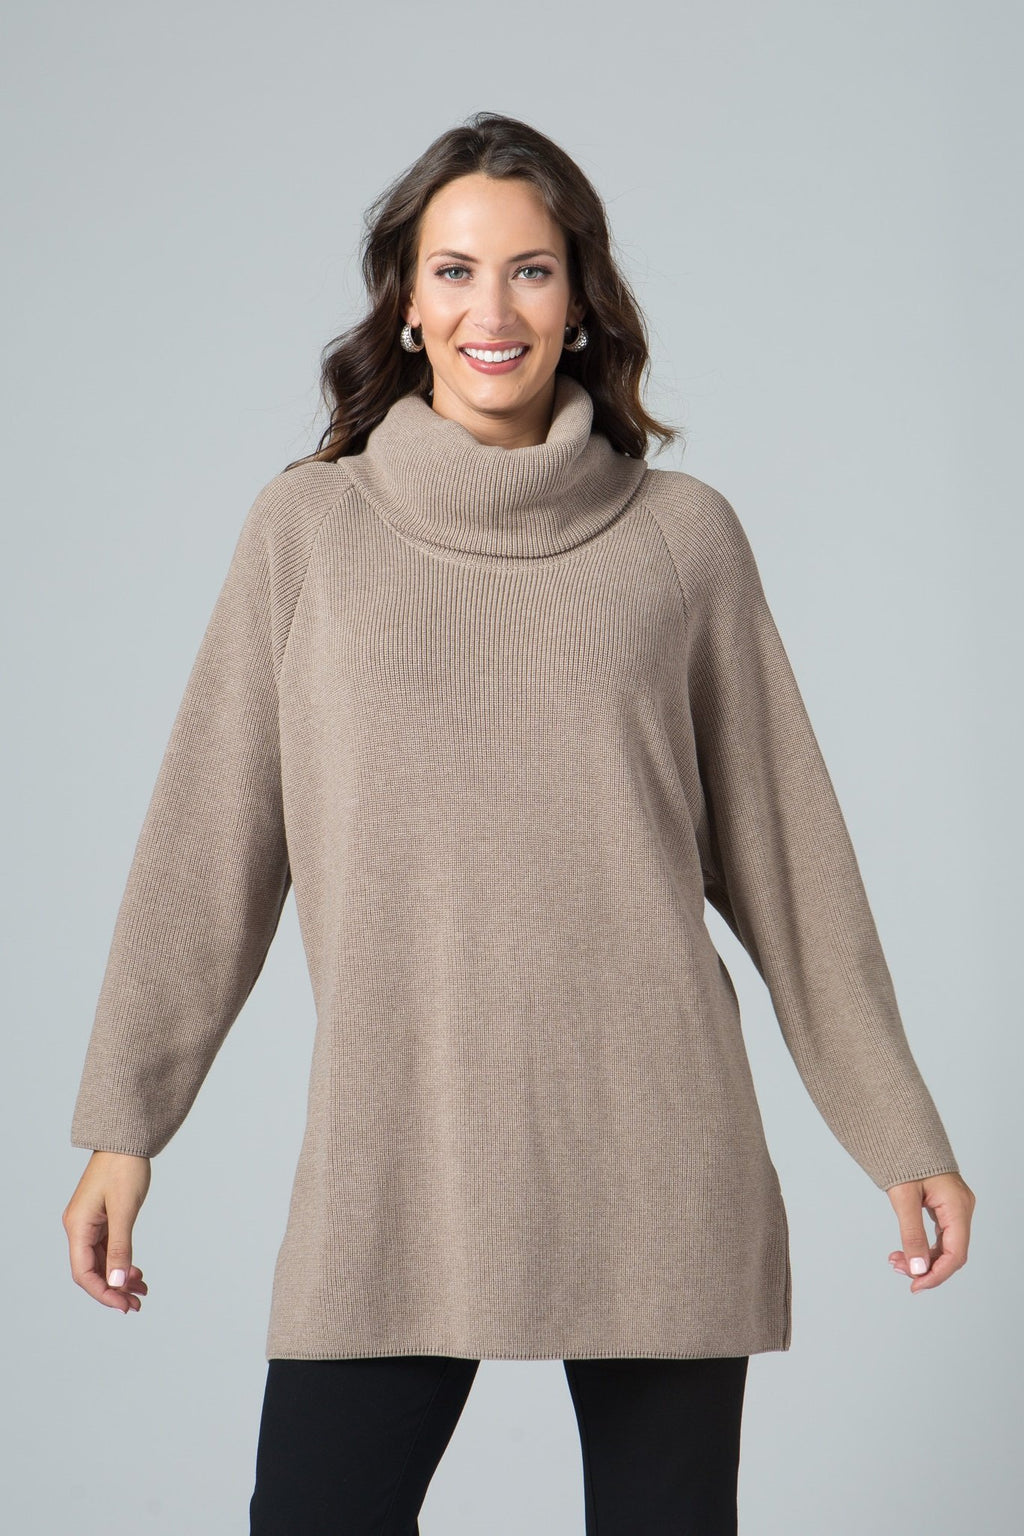 Oversized Cowl Neck Sweater Tunic